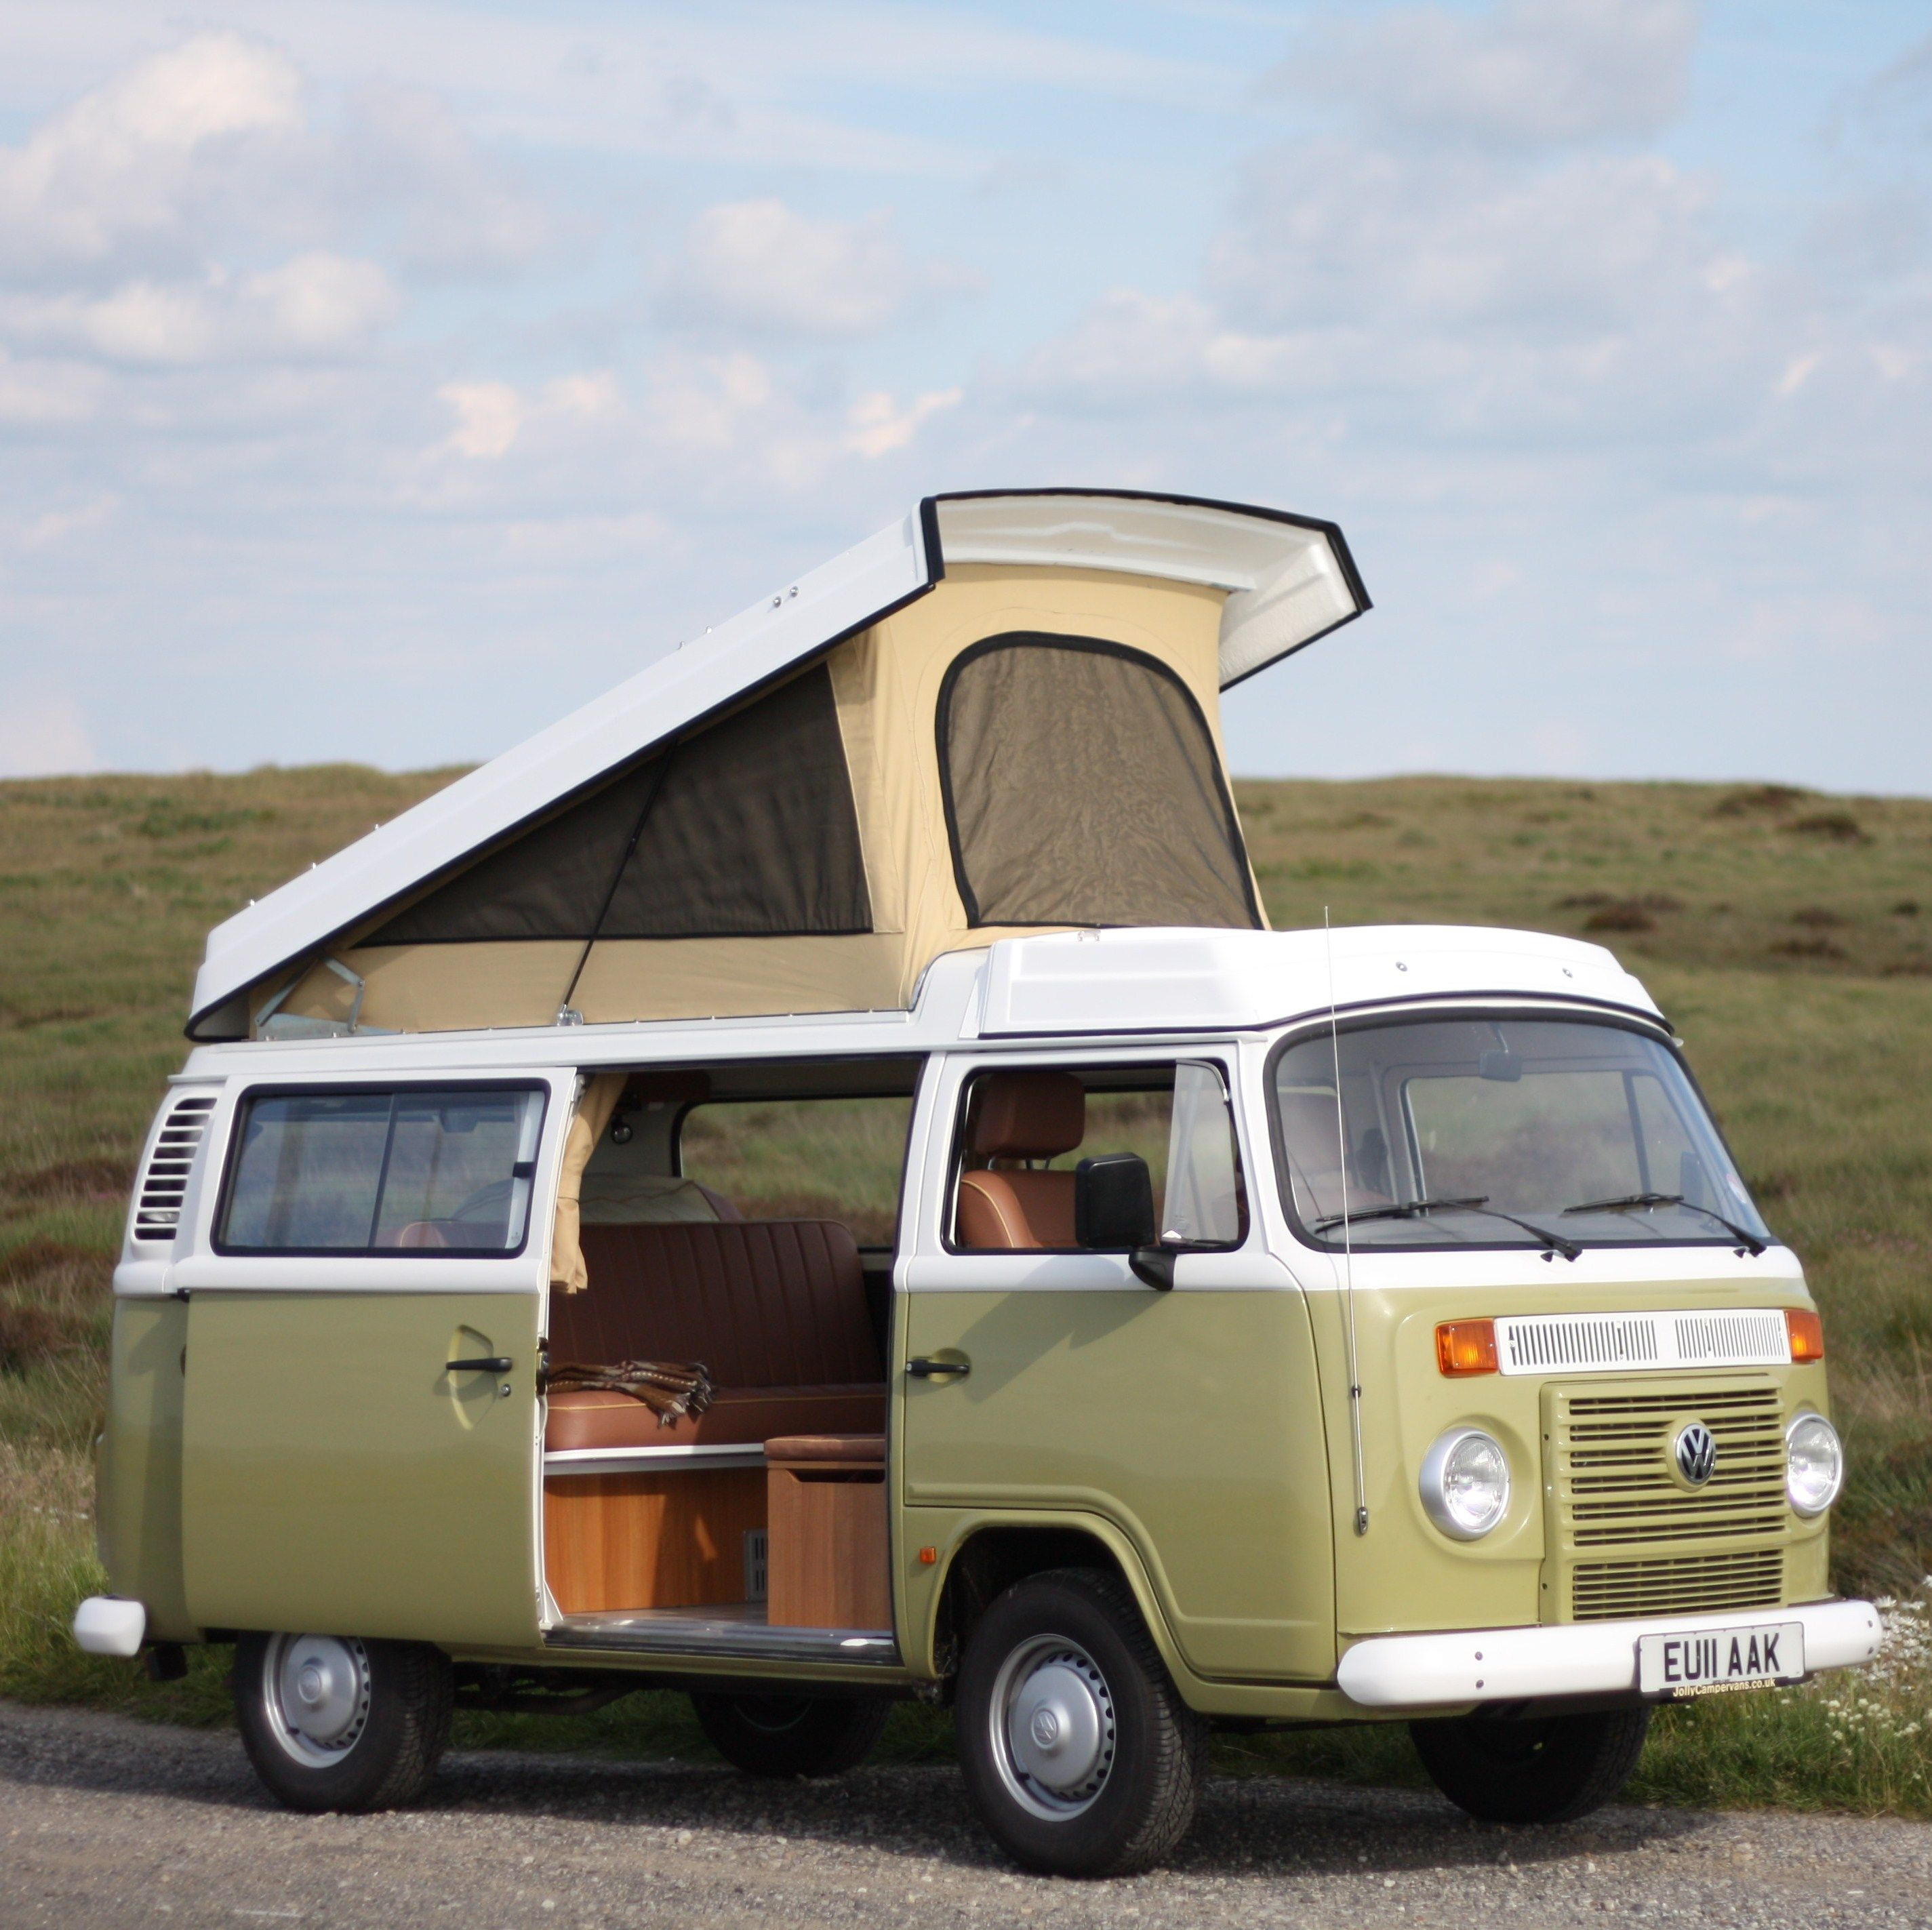 vw campers for sale , volkswagen campervans to buy, vw ...